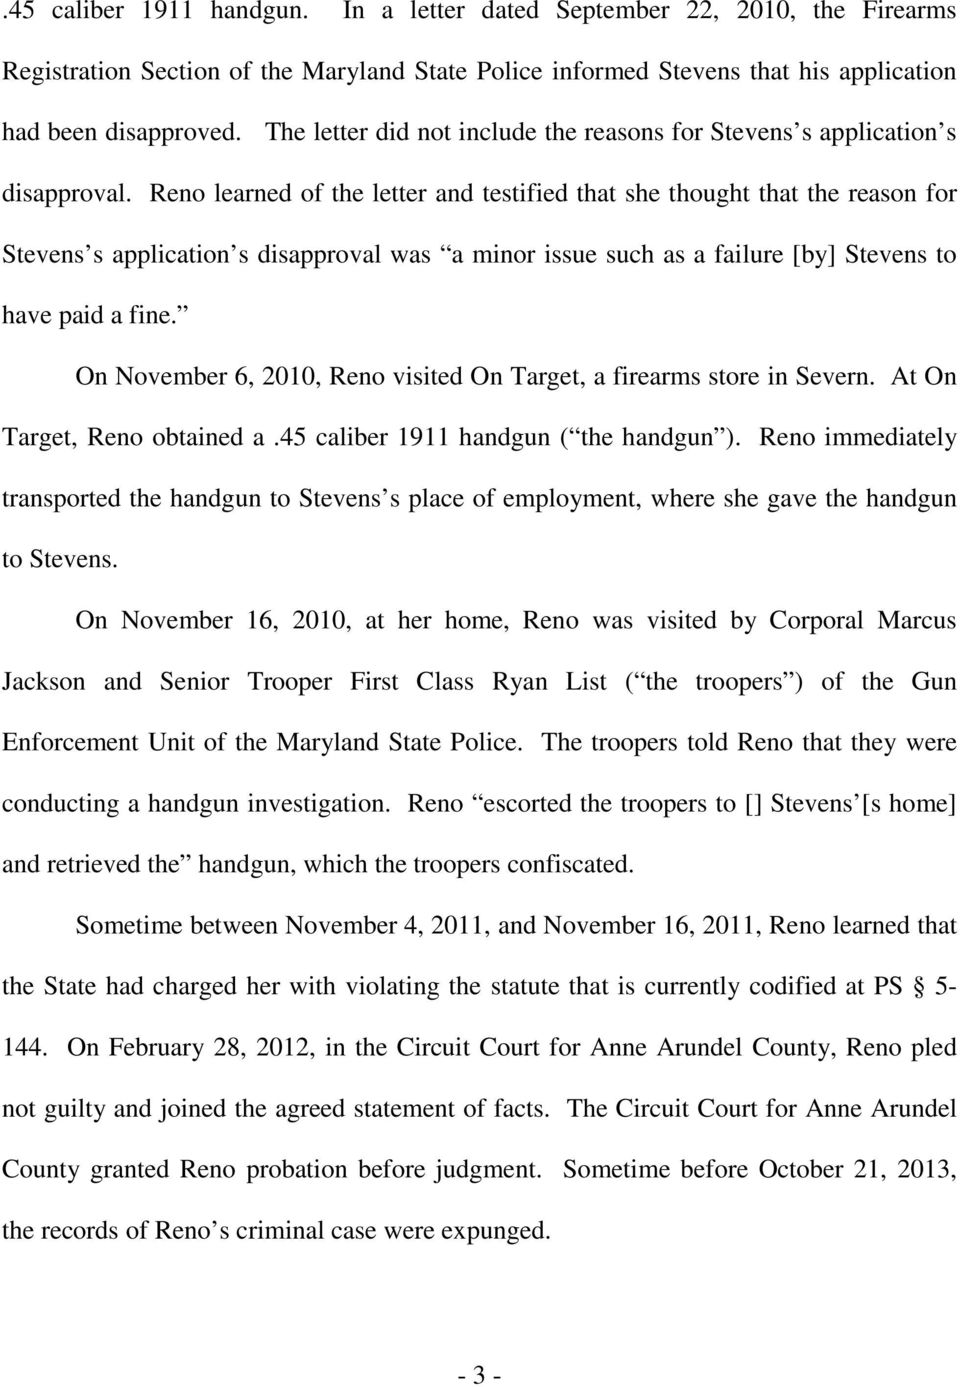 Reno learned of the letter and testified that she thought that the reason for Stevens s application s disapproval was a minor issue such as a failure [by] Stevens to have paid a fine.